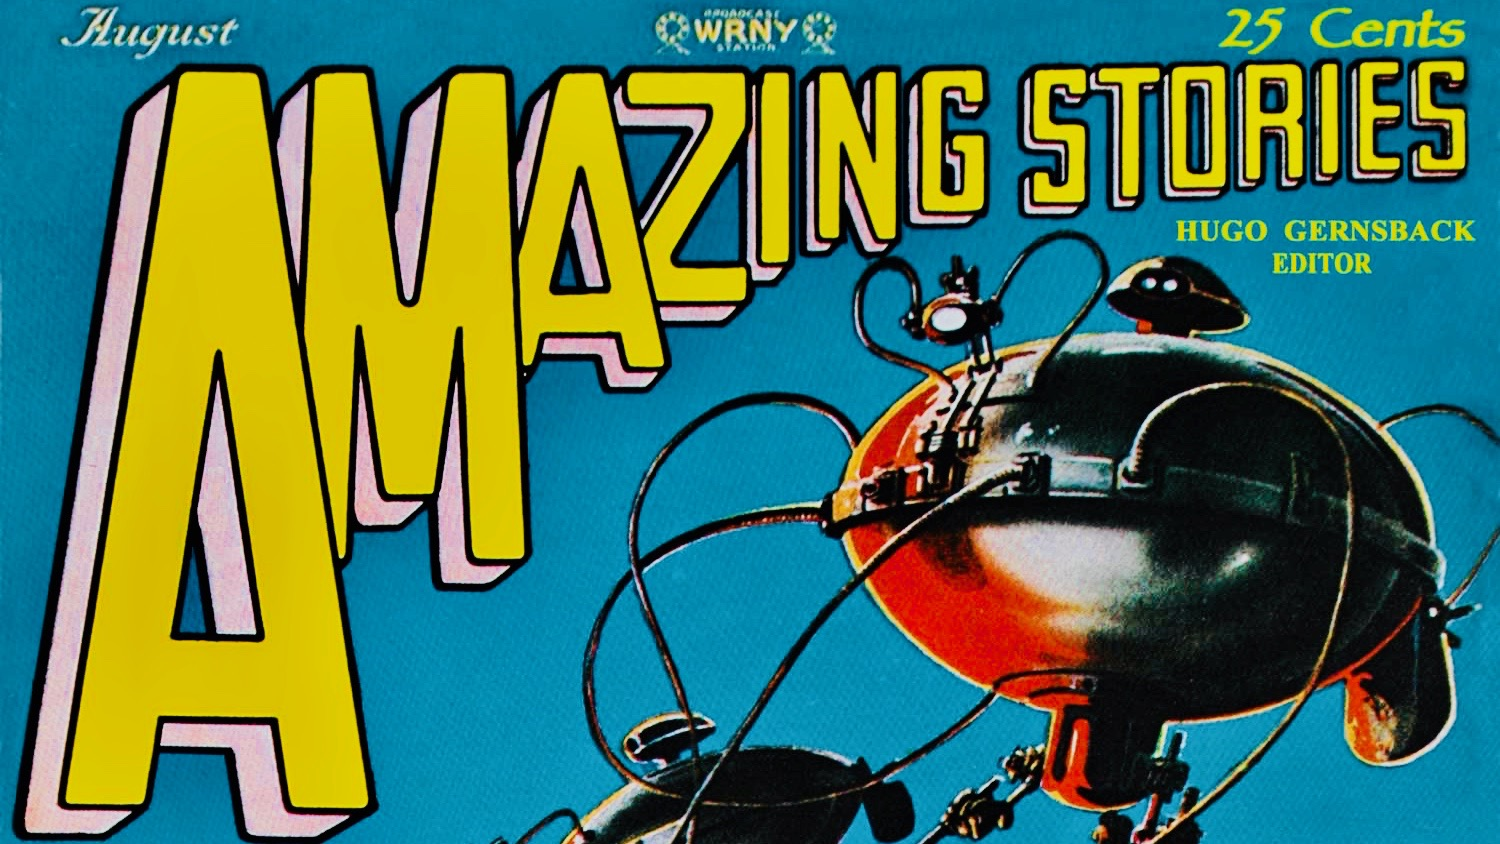 Amazing Stories: The War of the Worlds 1927